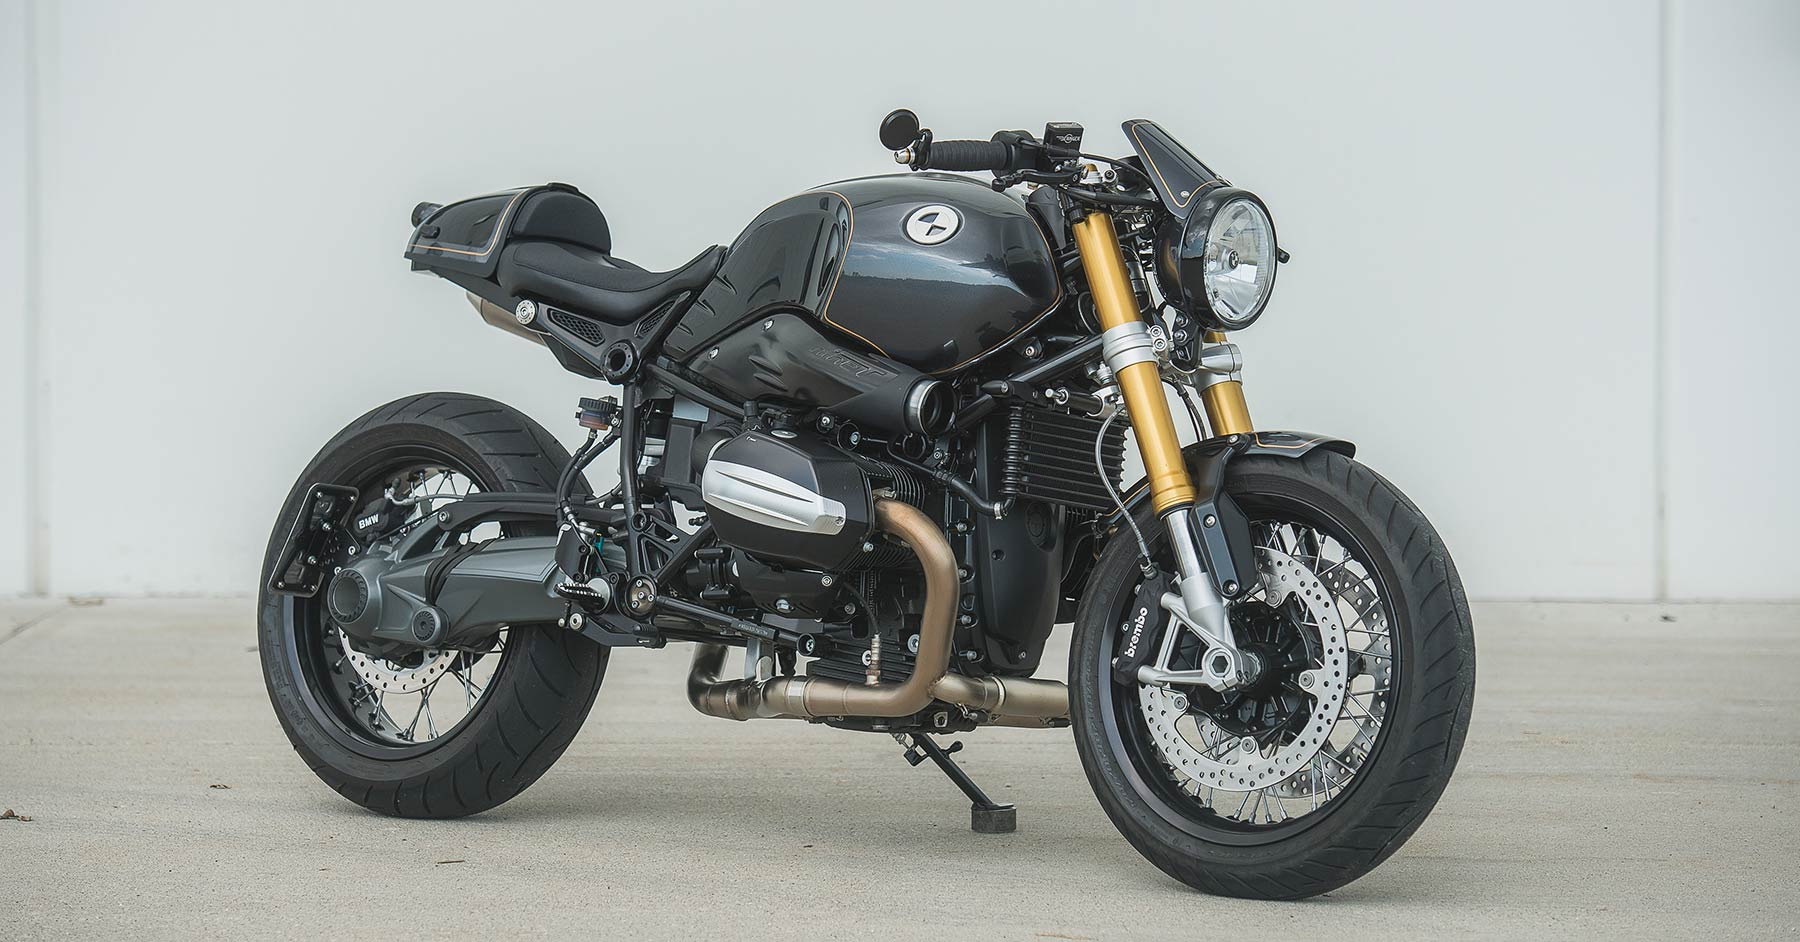 Reality Check: A tweaked BMW R nineT from Analog